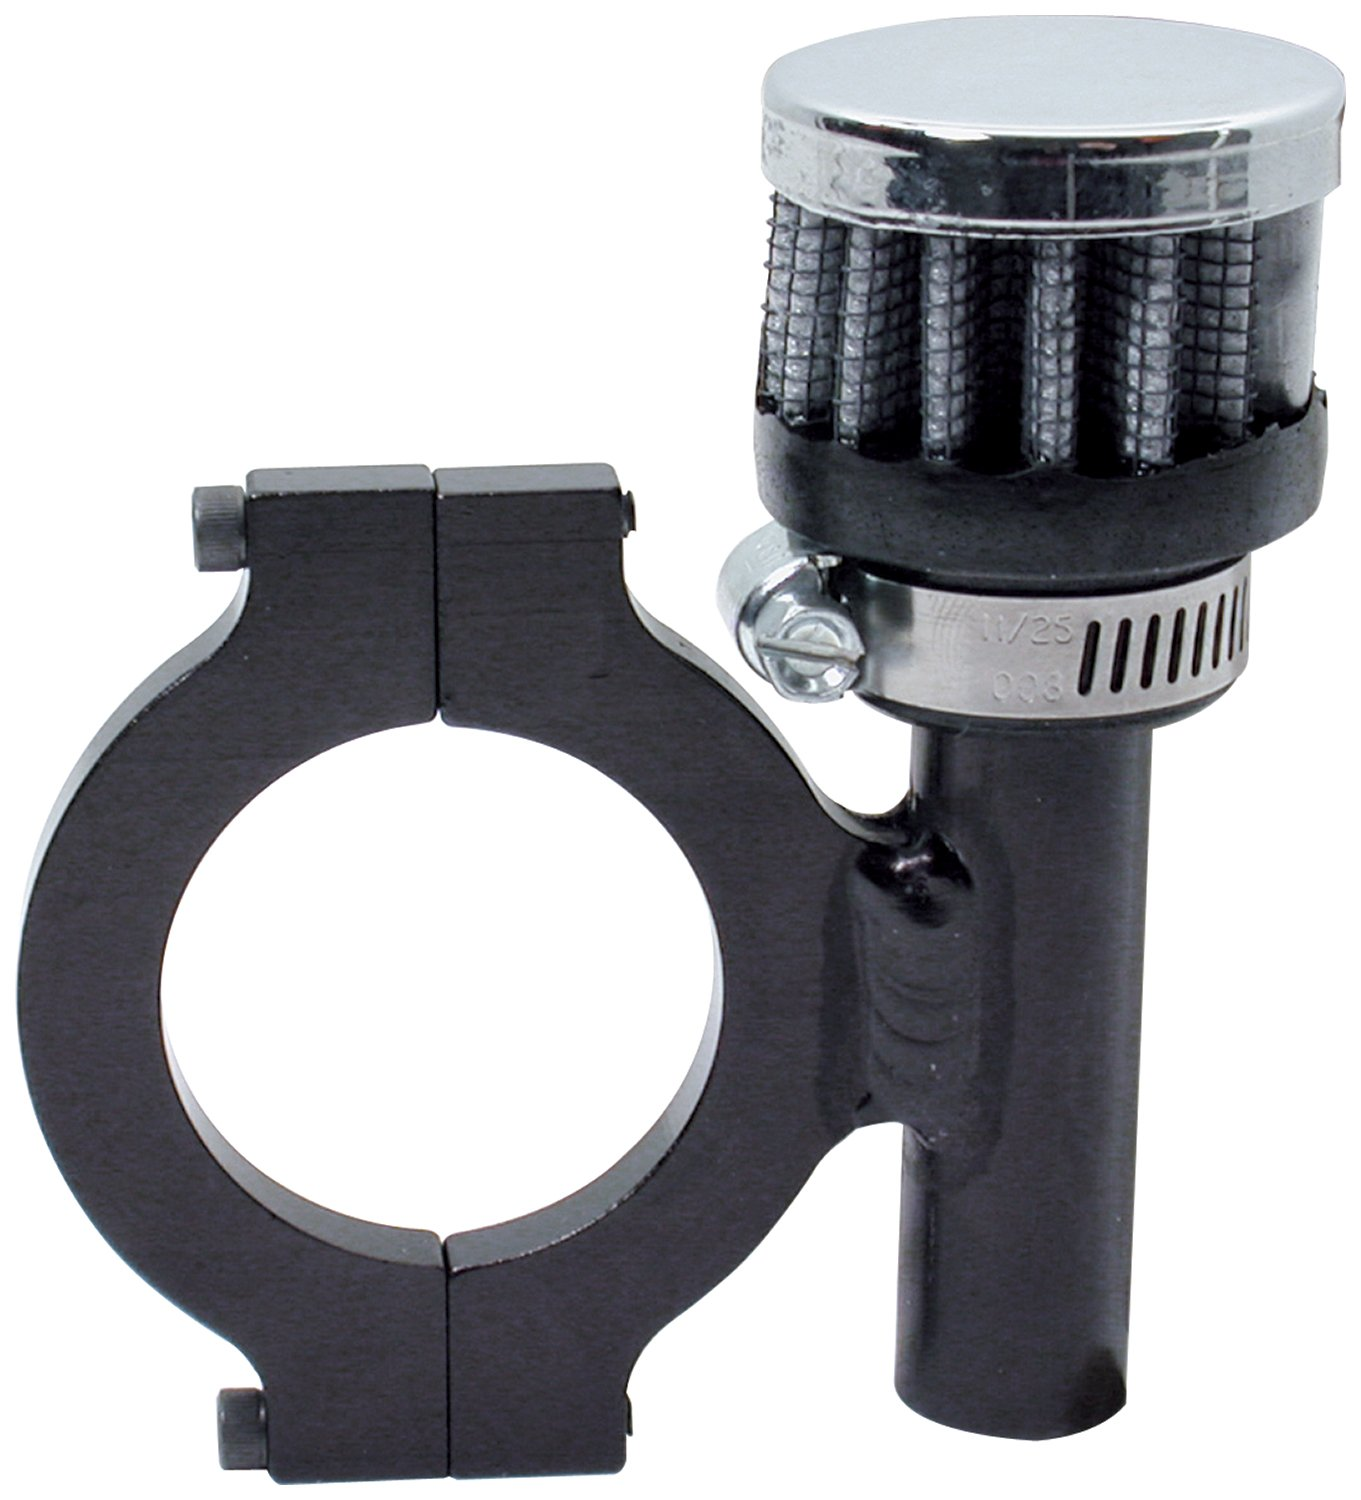 Allstar ALL36107 1'' High x 1-3/8'' Diameter Clamp-On Breather for 1.75'' Round Tubing Mount